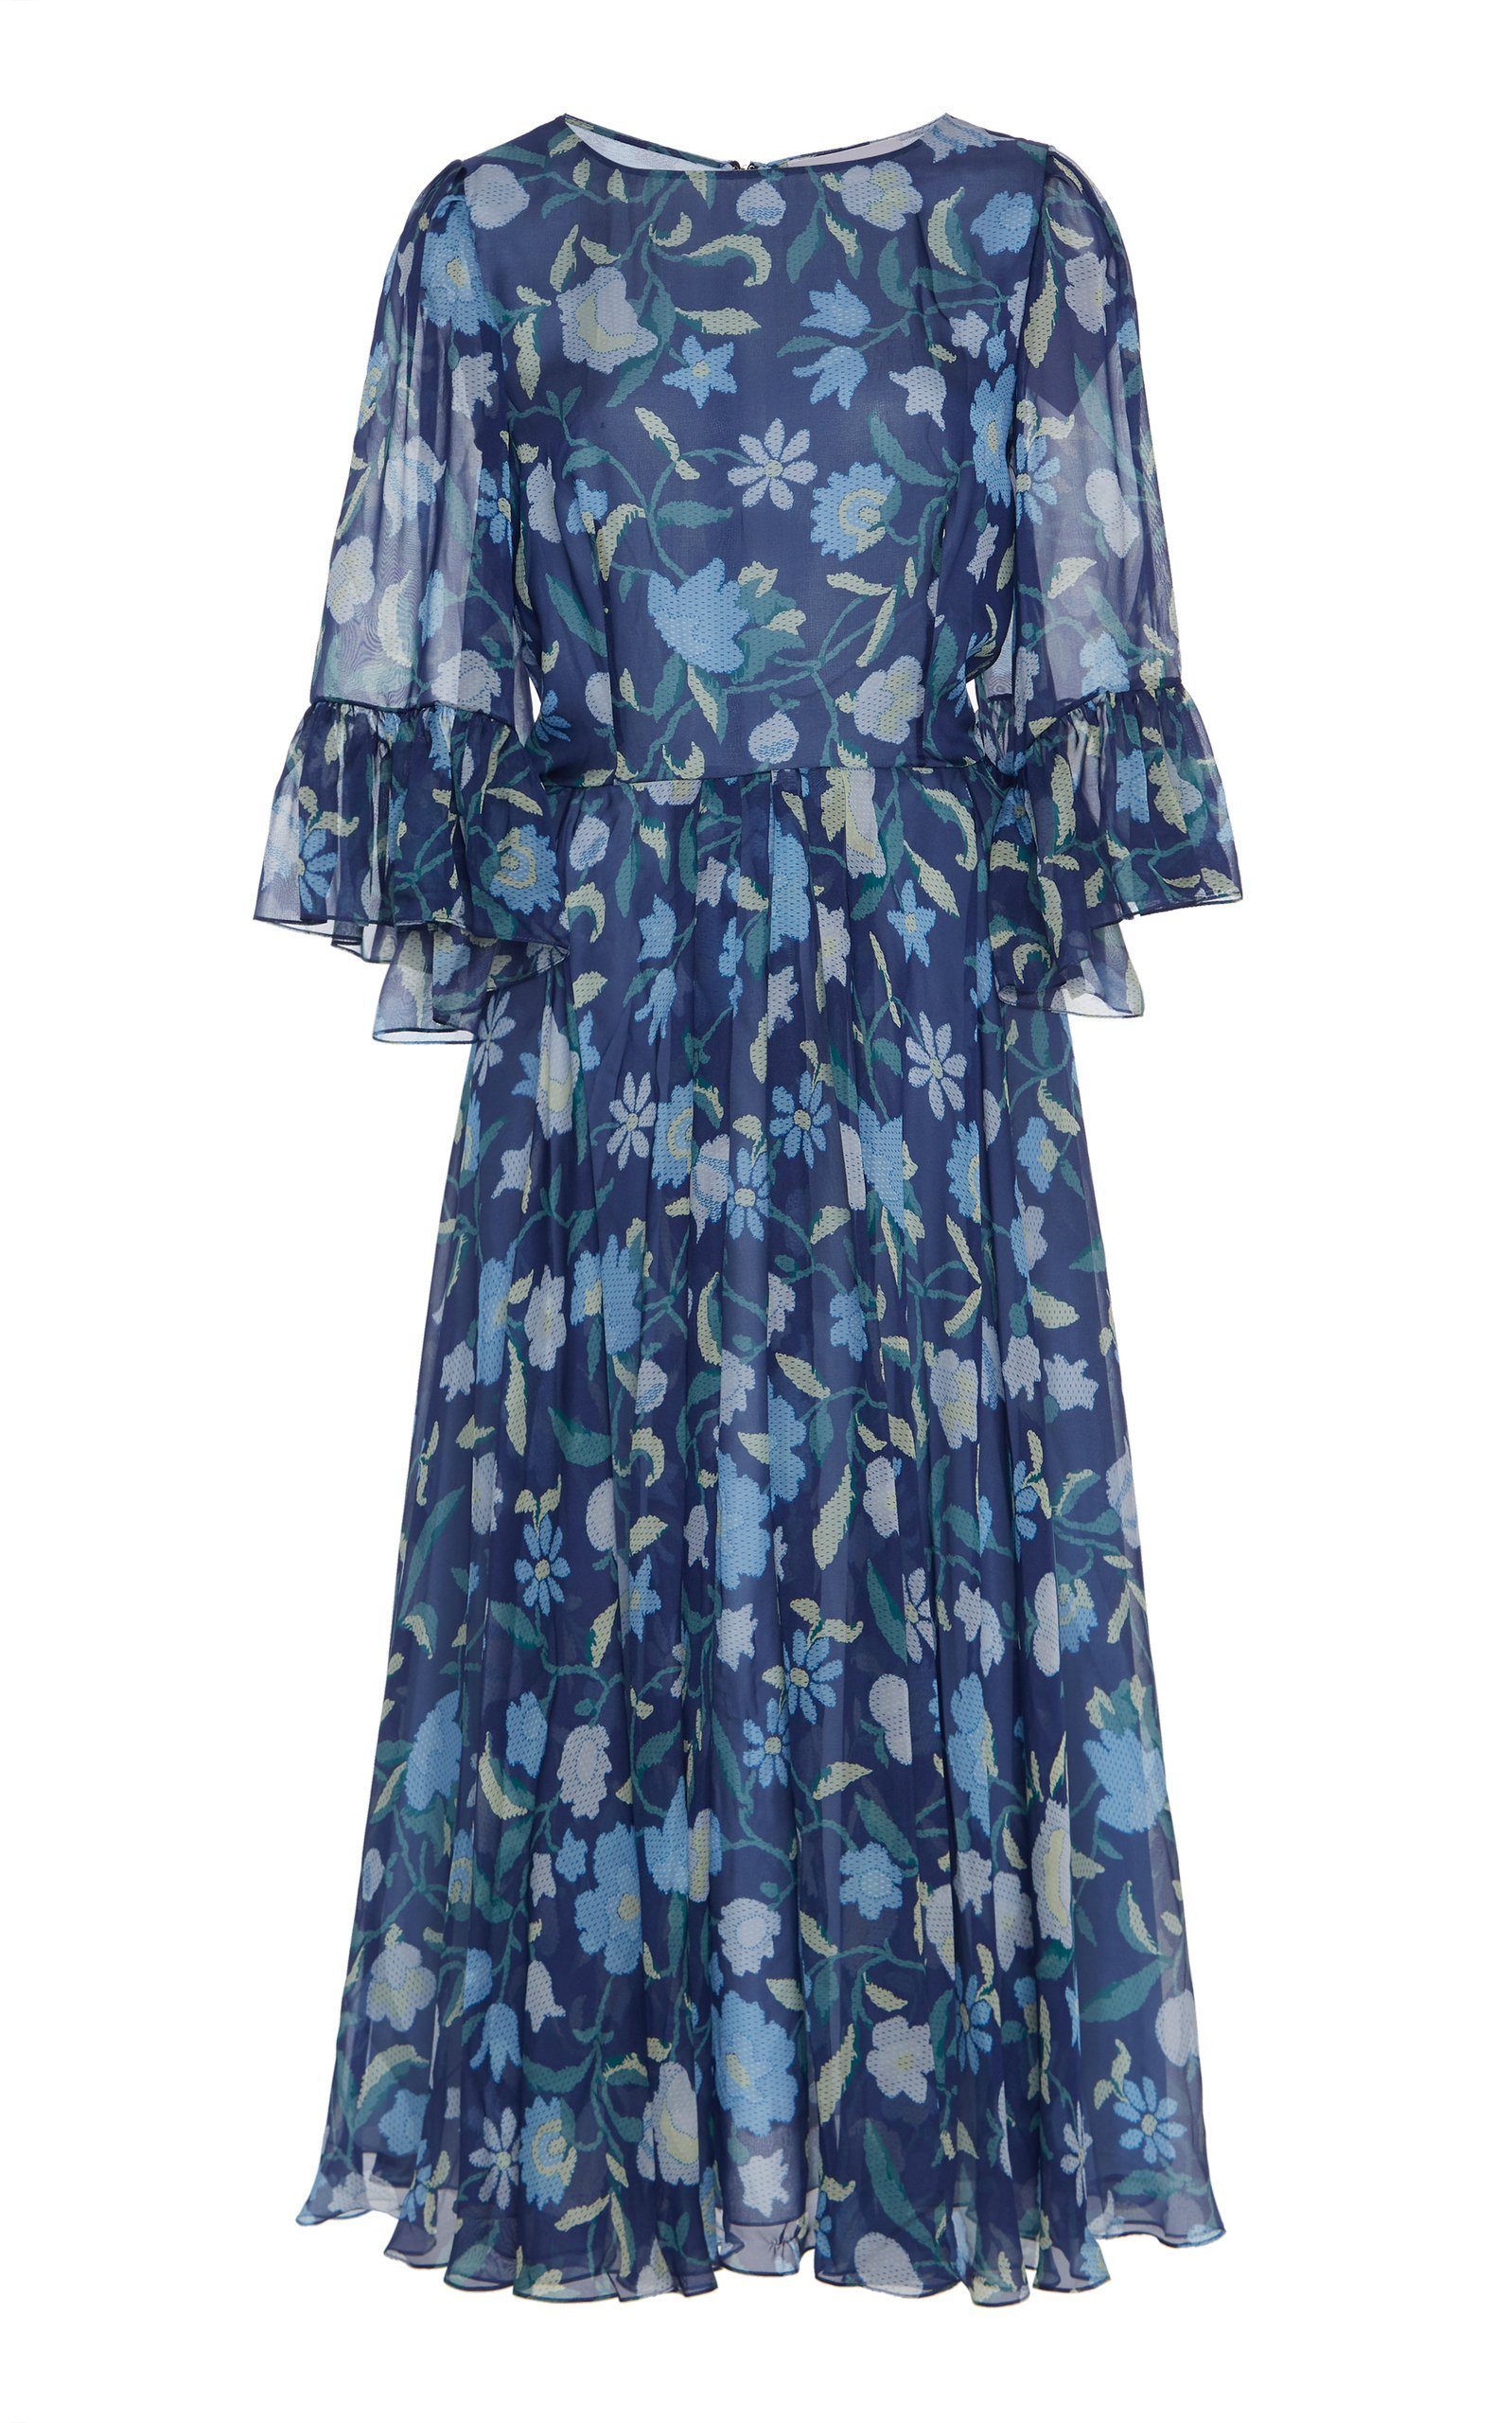 Luisa Beccaria Floral Midi Dress